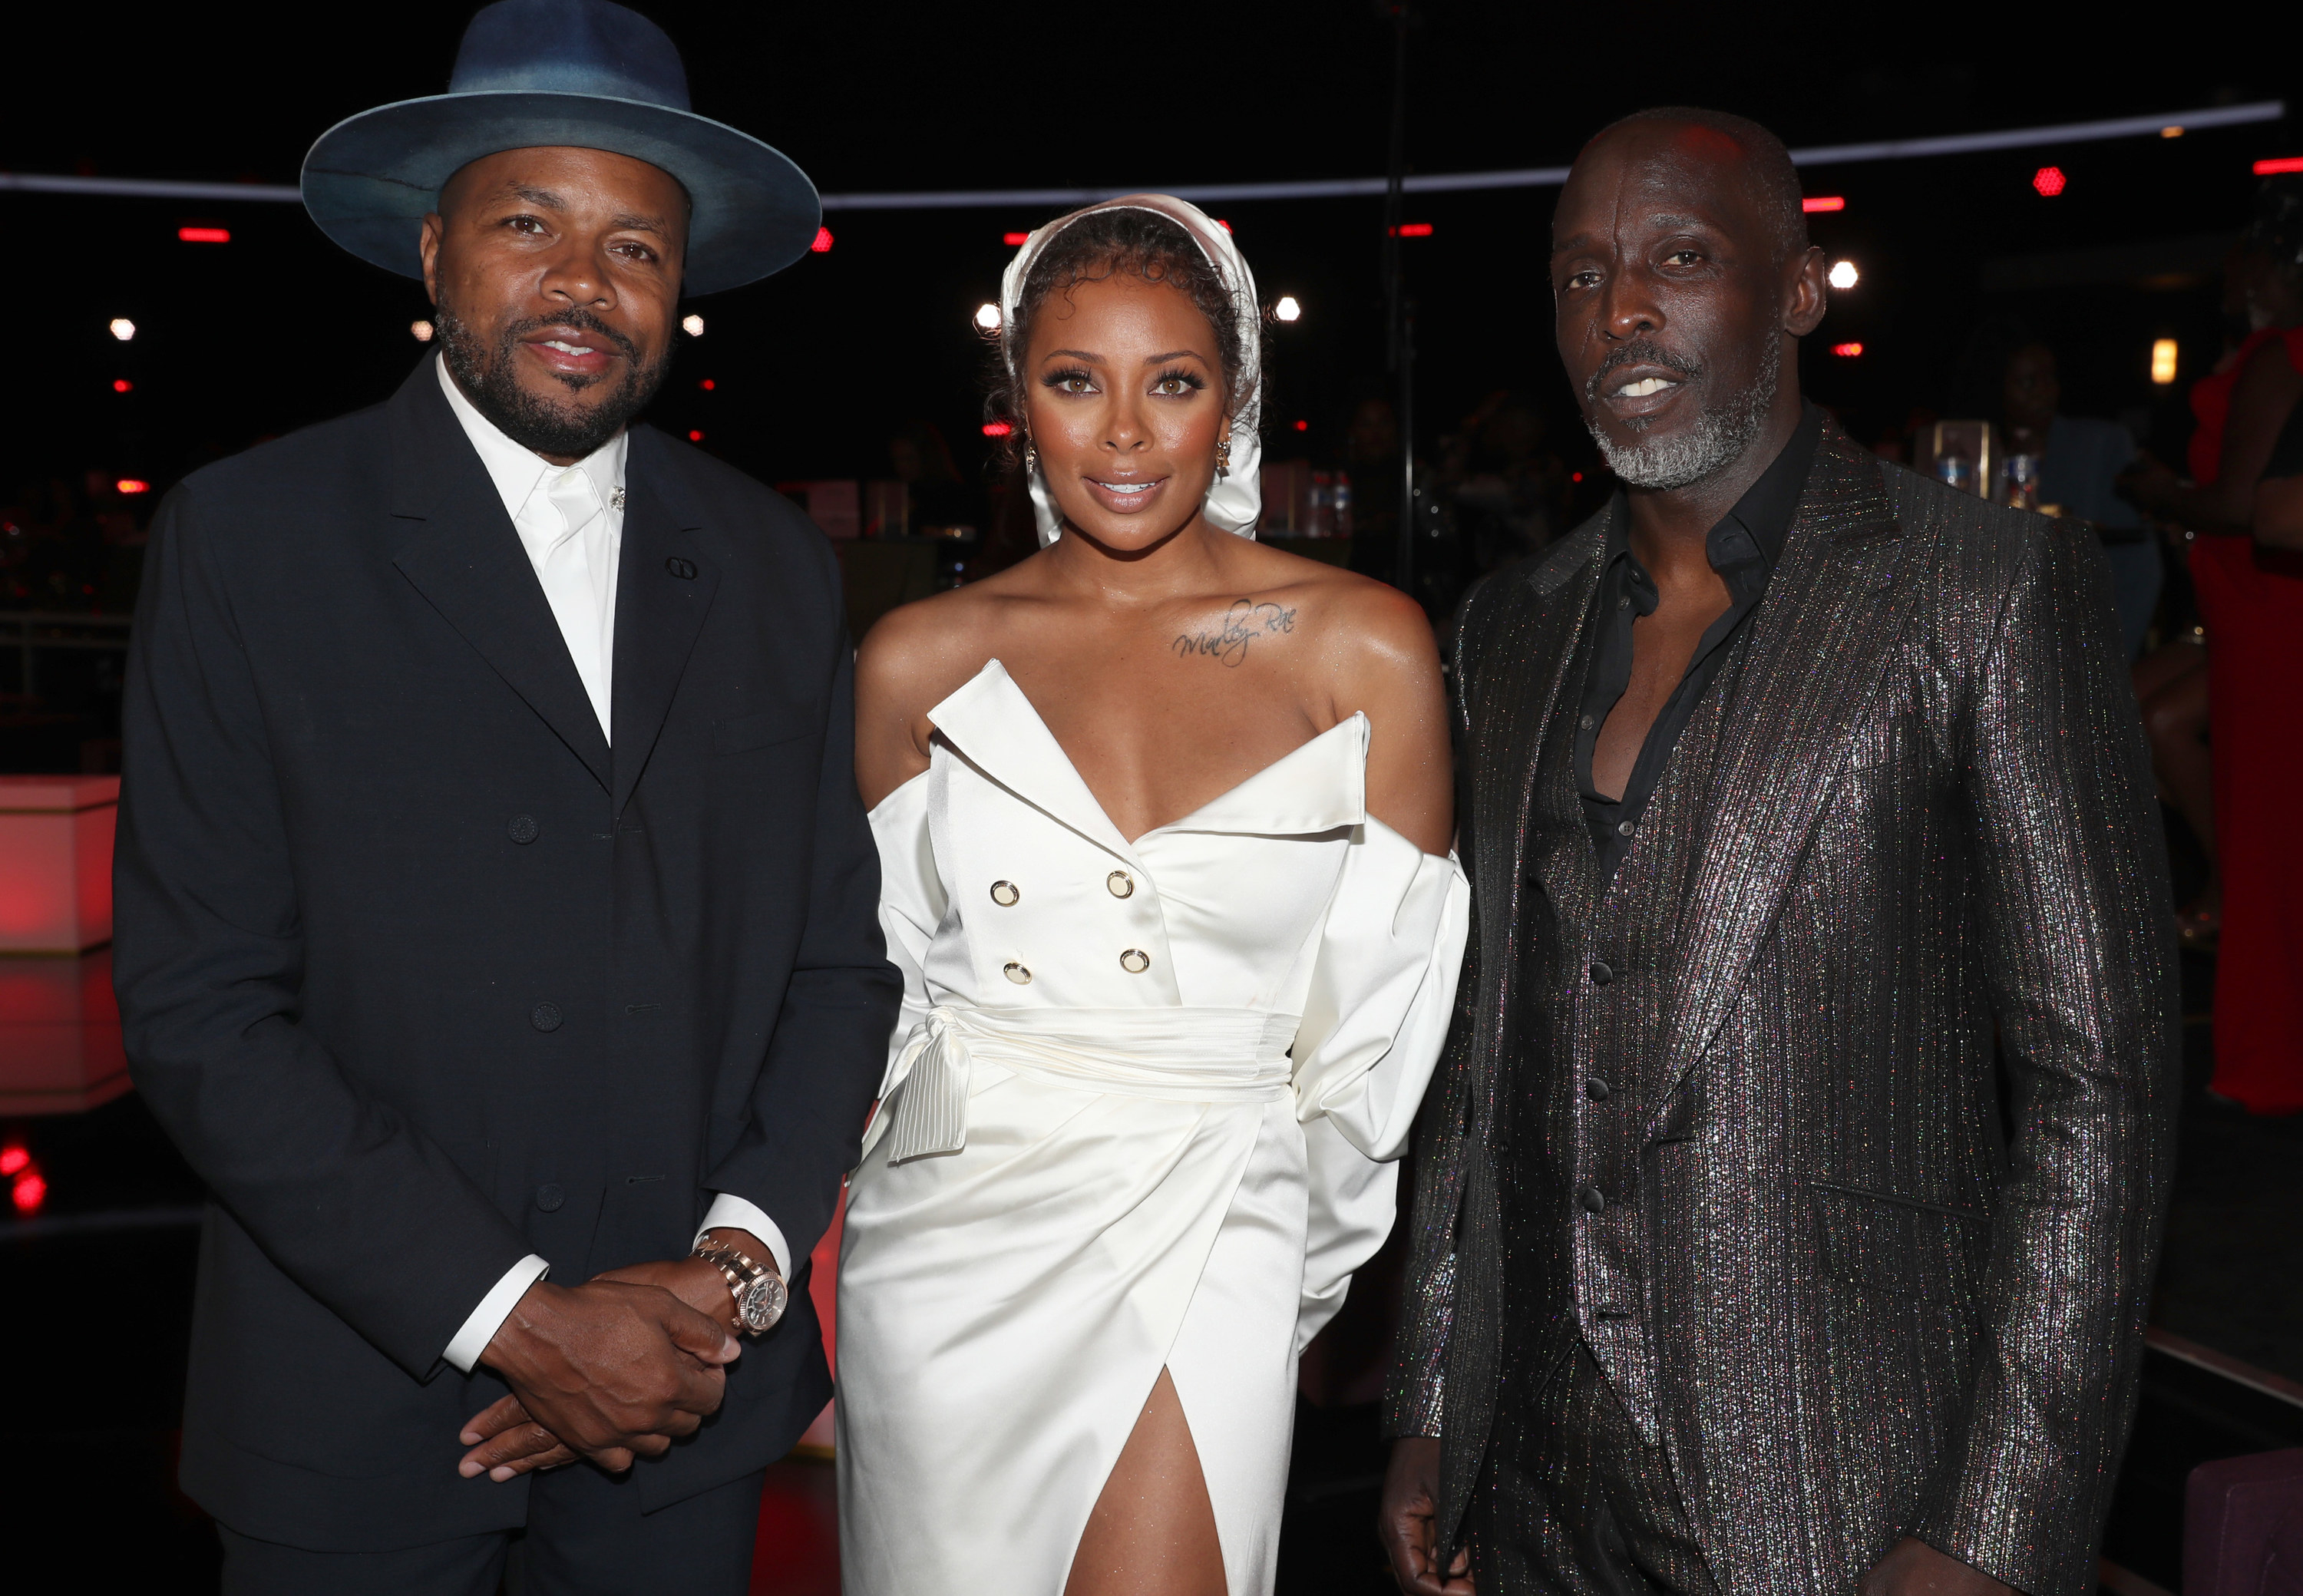 Michael posing for a photo with Eva Marcille